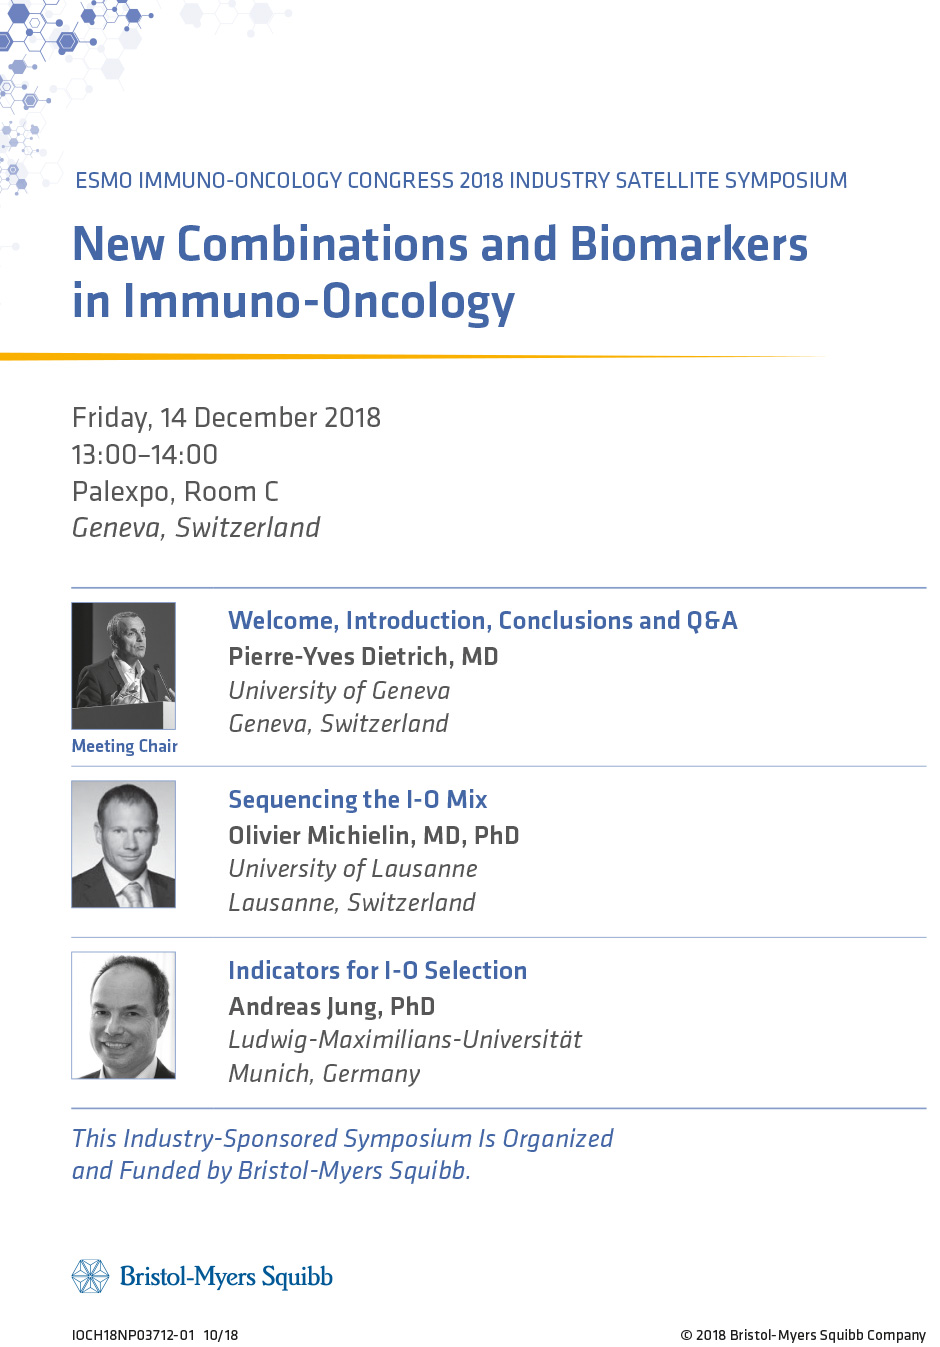 New Combinations and Biomarkers in Immuno-Oncology